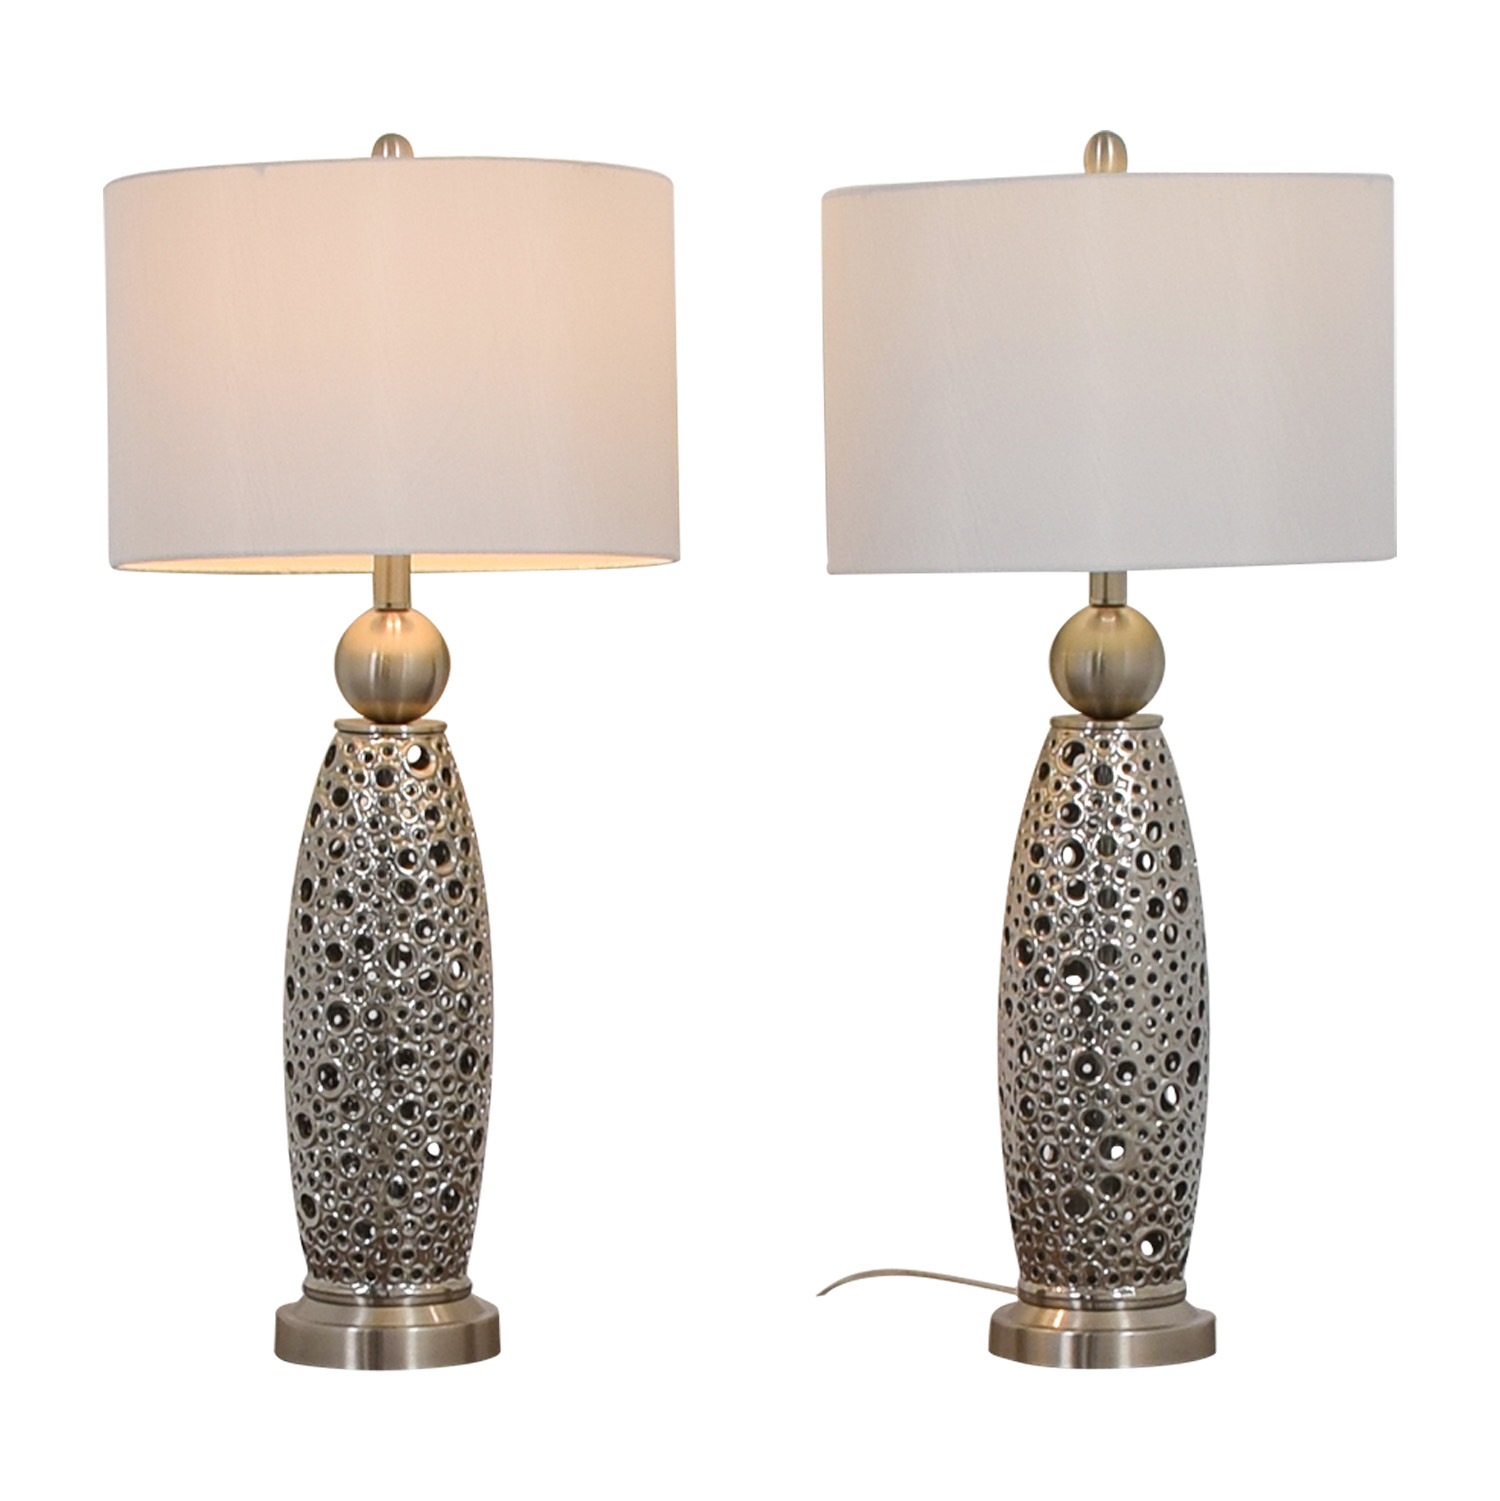 Rooms To Go Rooms To Go Filigree Circle Silver Lamps used